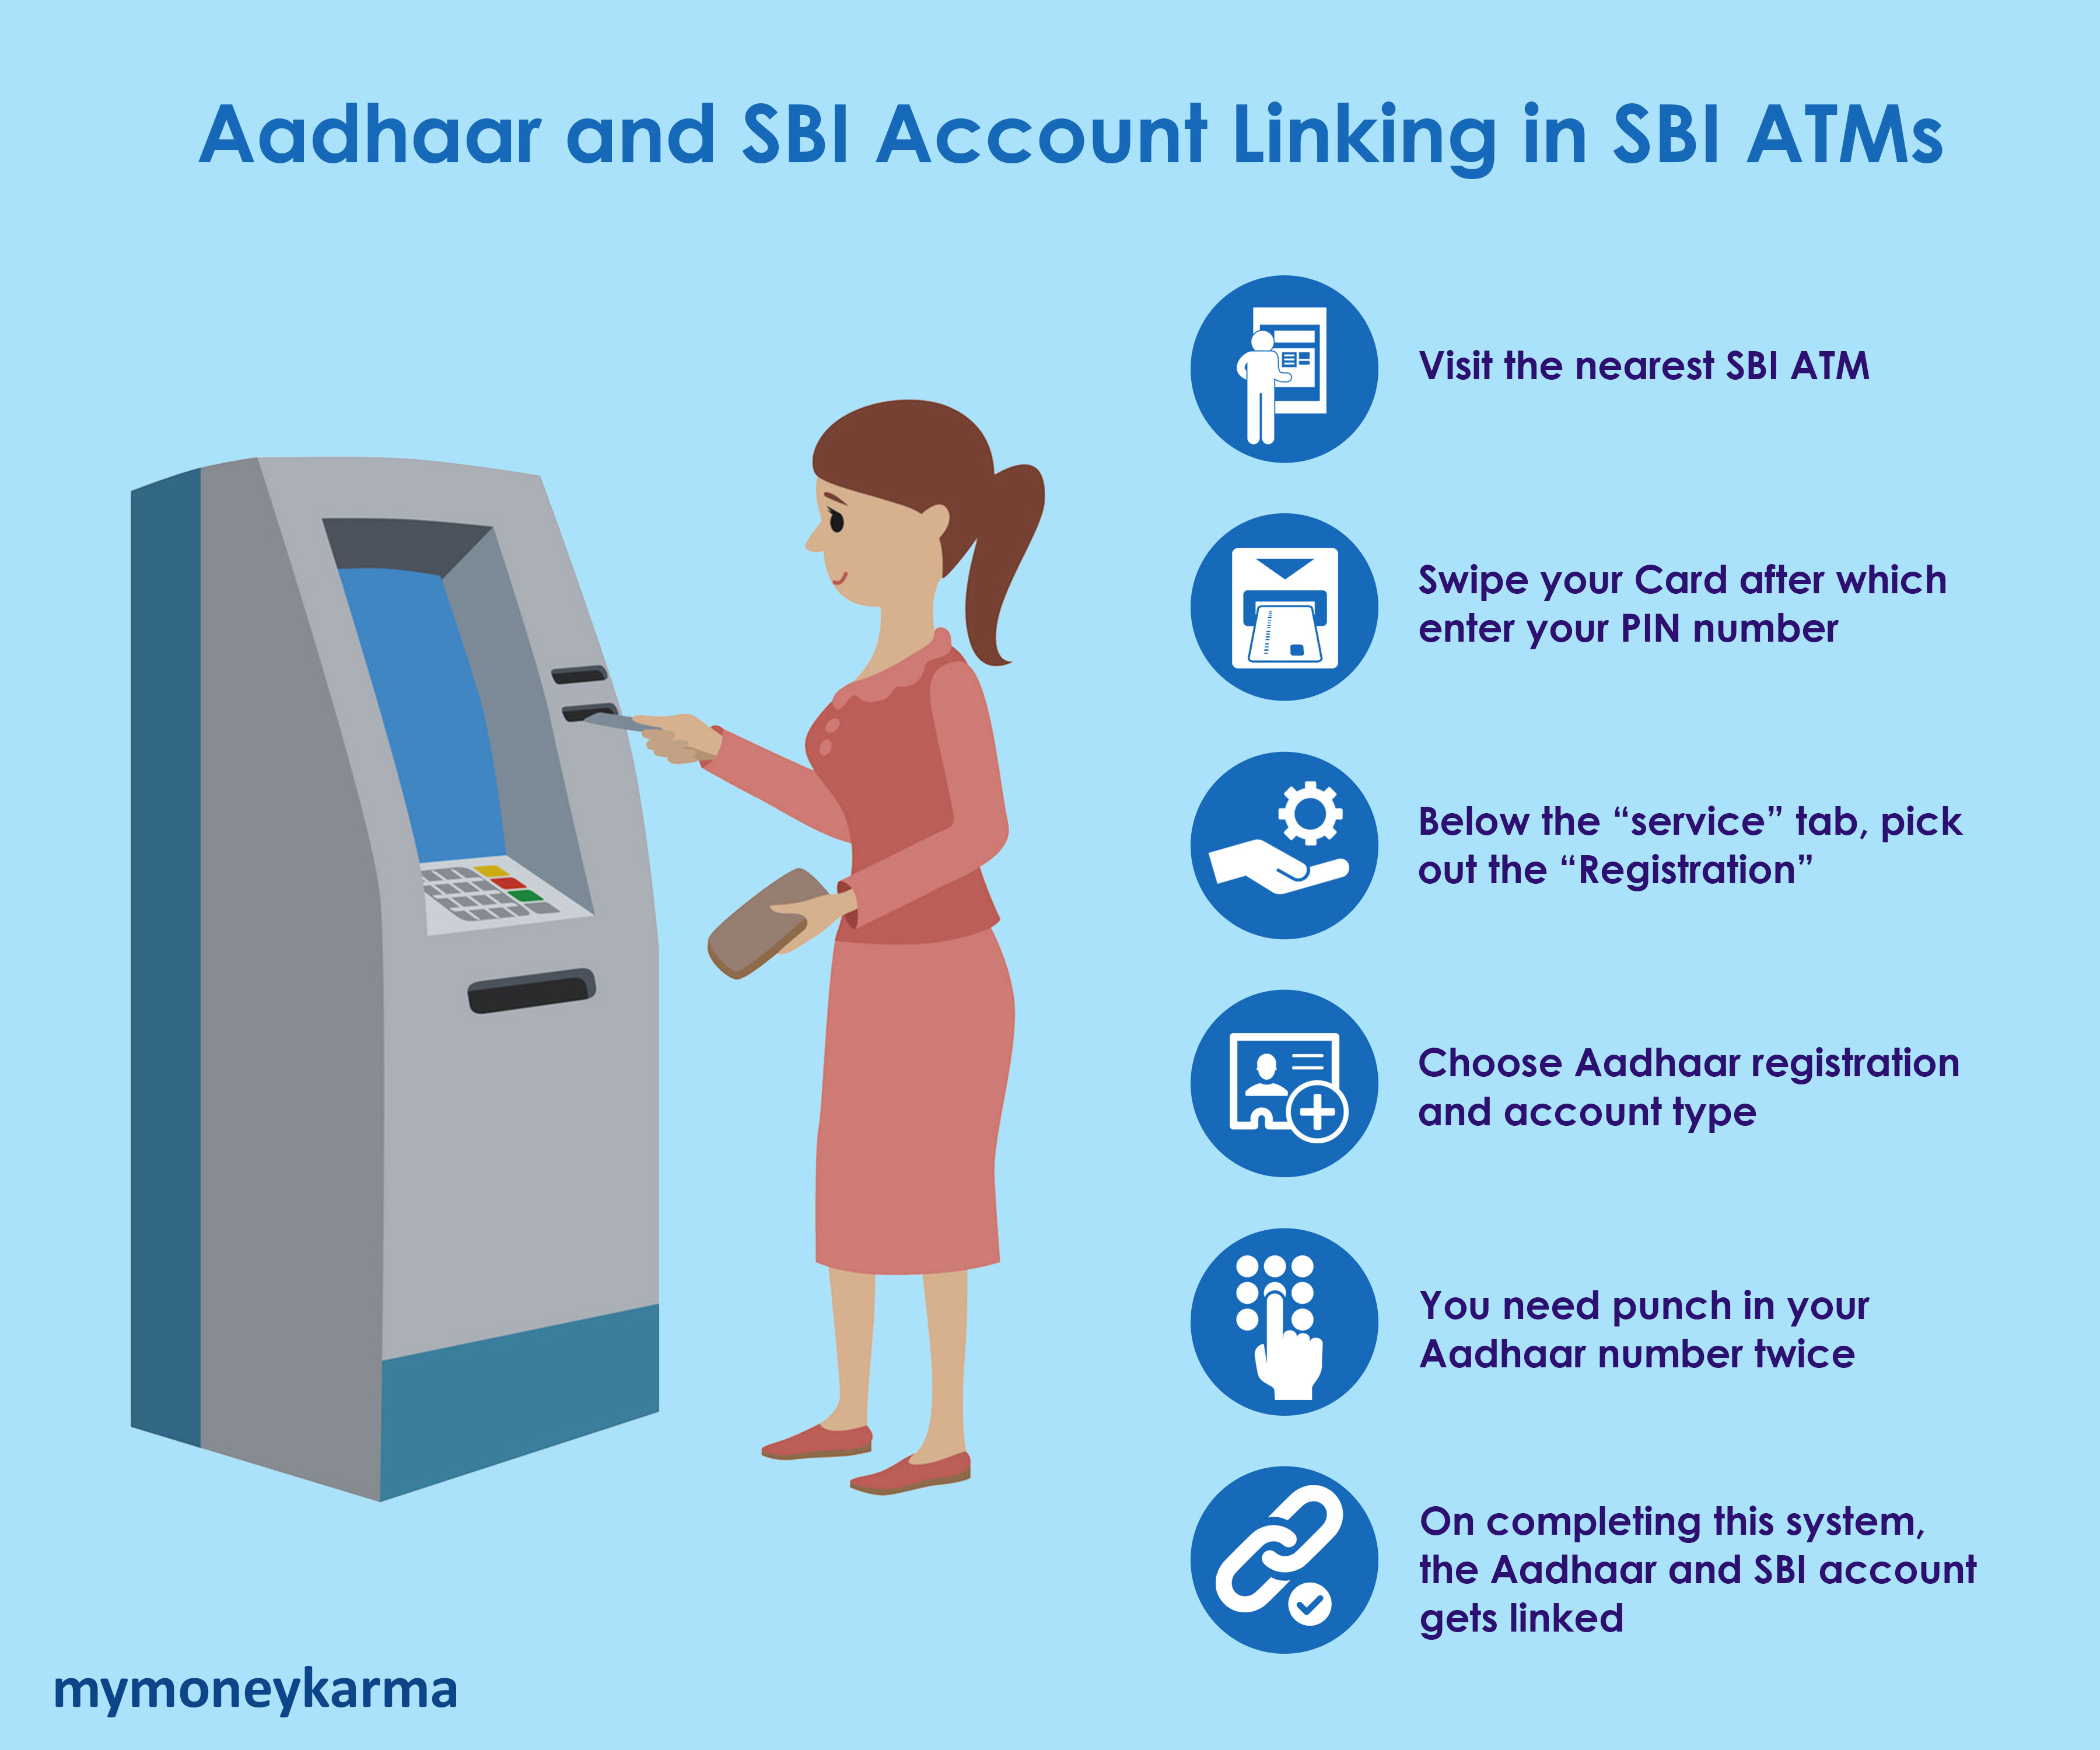 "1.Visit the nearest SBI ATM                             2.Swipe your Card after which enter your PIN number                             3.Below the ""service"" tab, pick out the ""Registration""                             4.Choose Aadhaar registration and account type                             5.You need punch in your Aadhaar number twice                             6.On completing this system, the Aadhaar and SBI account gets linked"